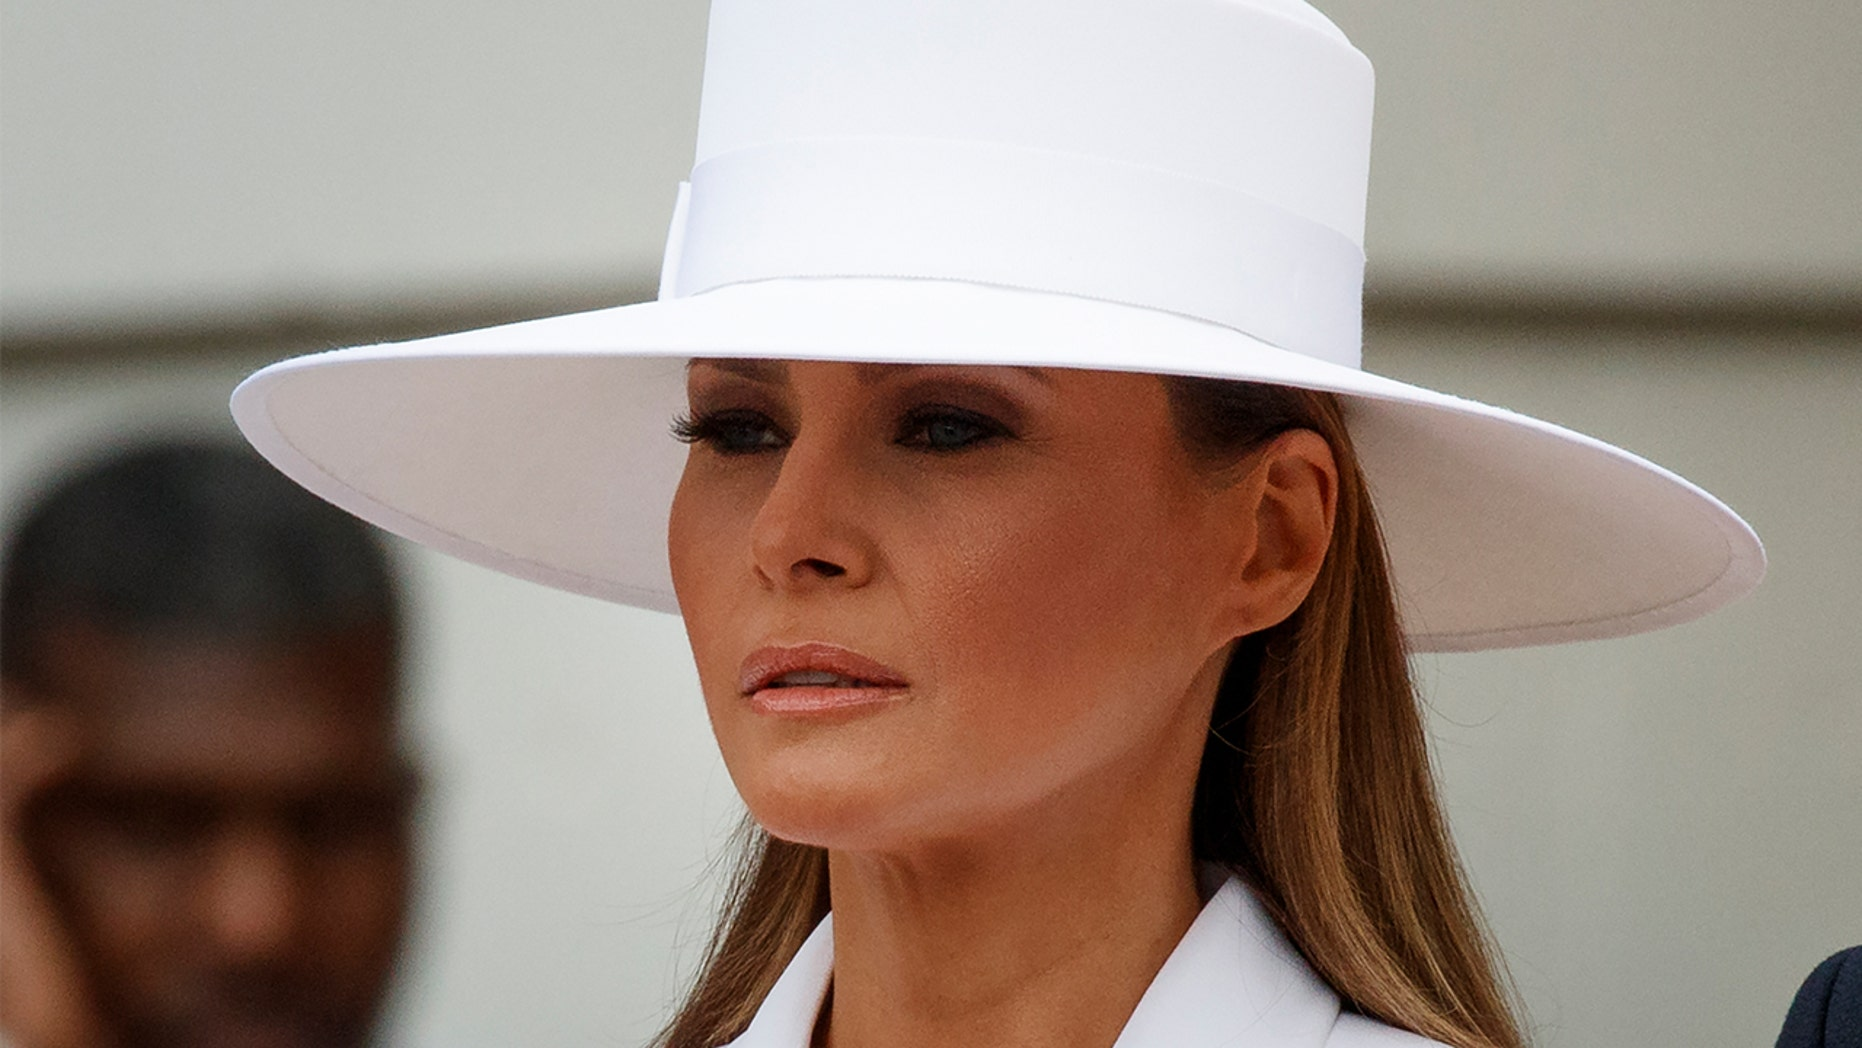 First lady Melania Trump's hat drew all the attention Tuesday during the President's first official state visit with France.